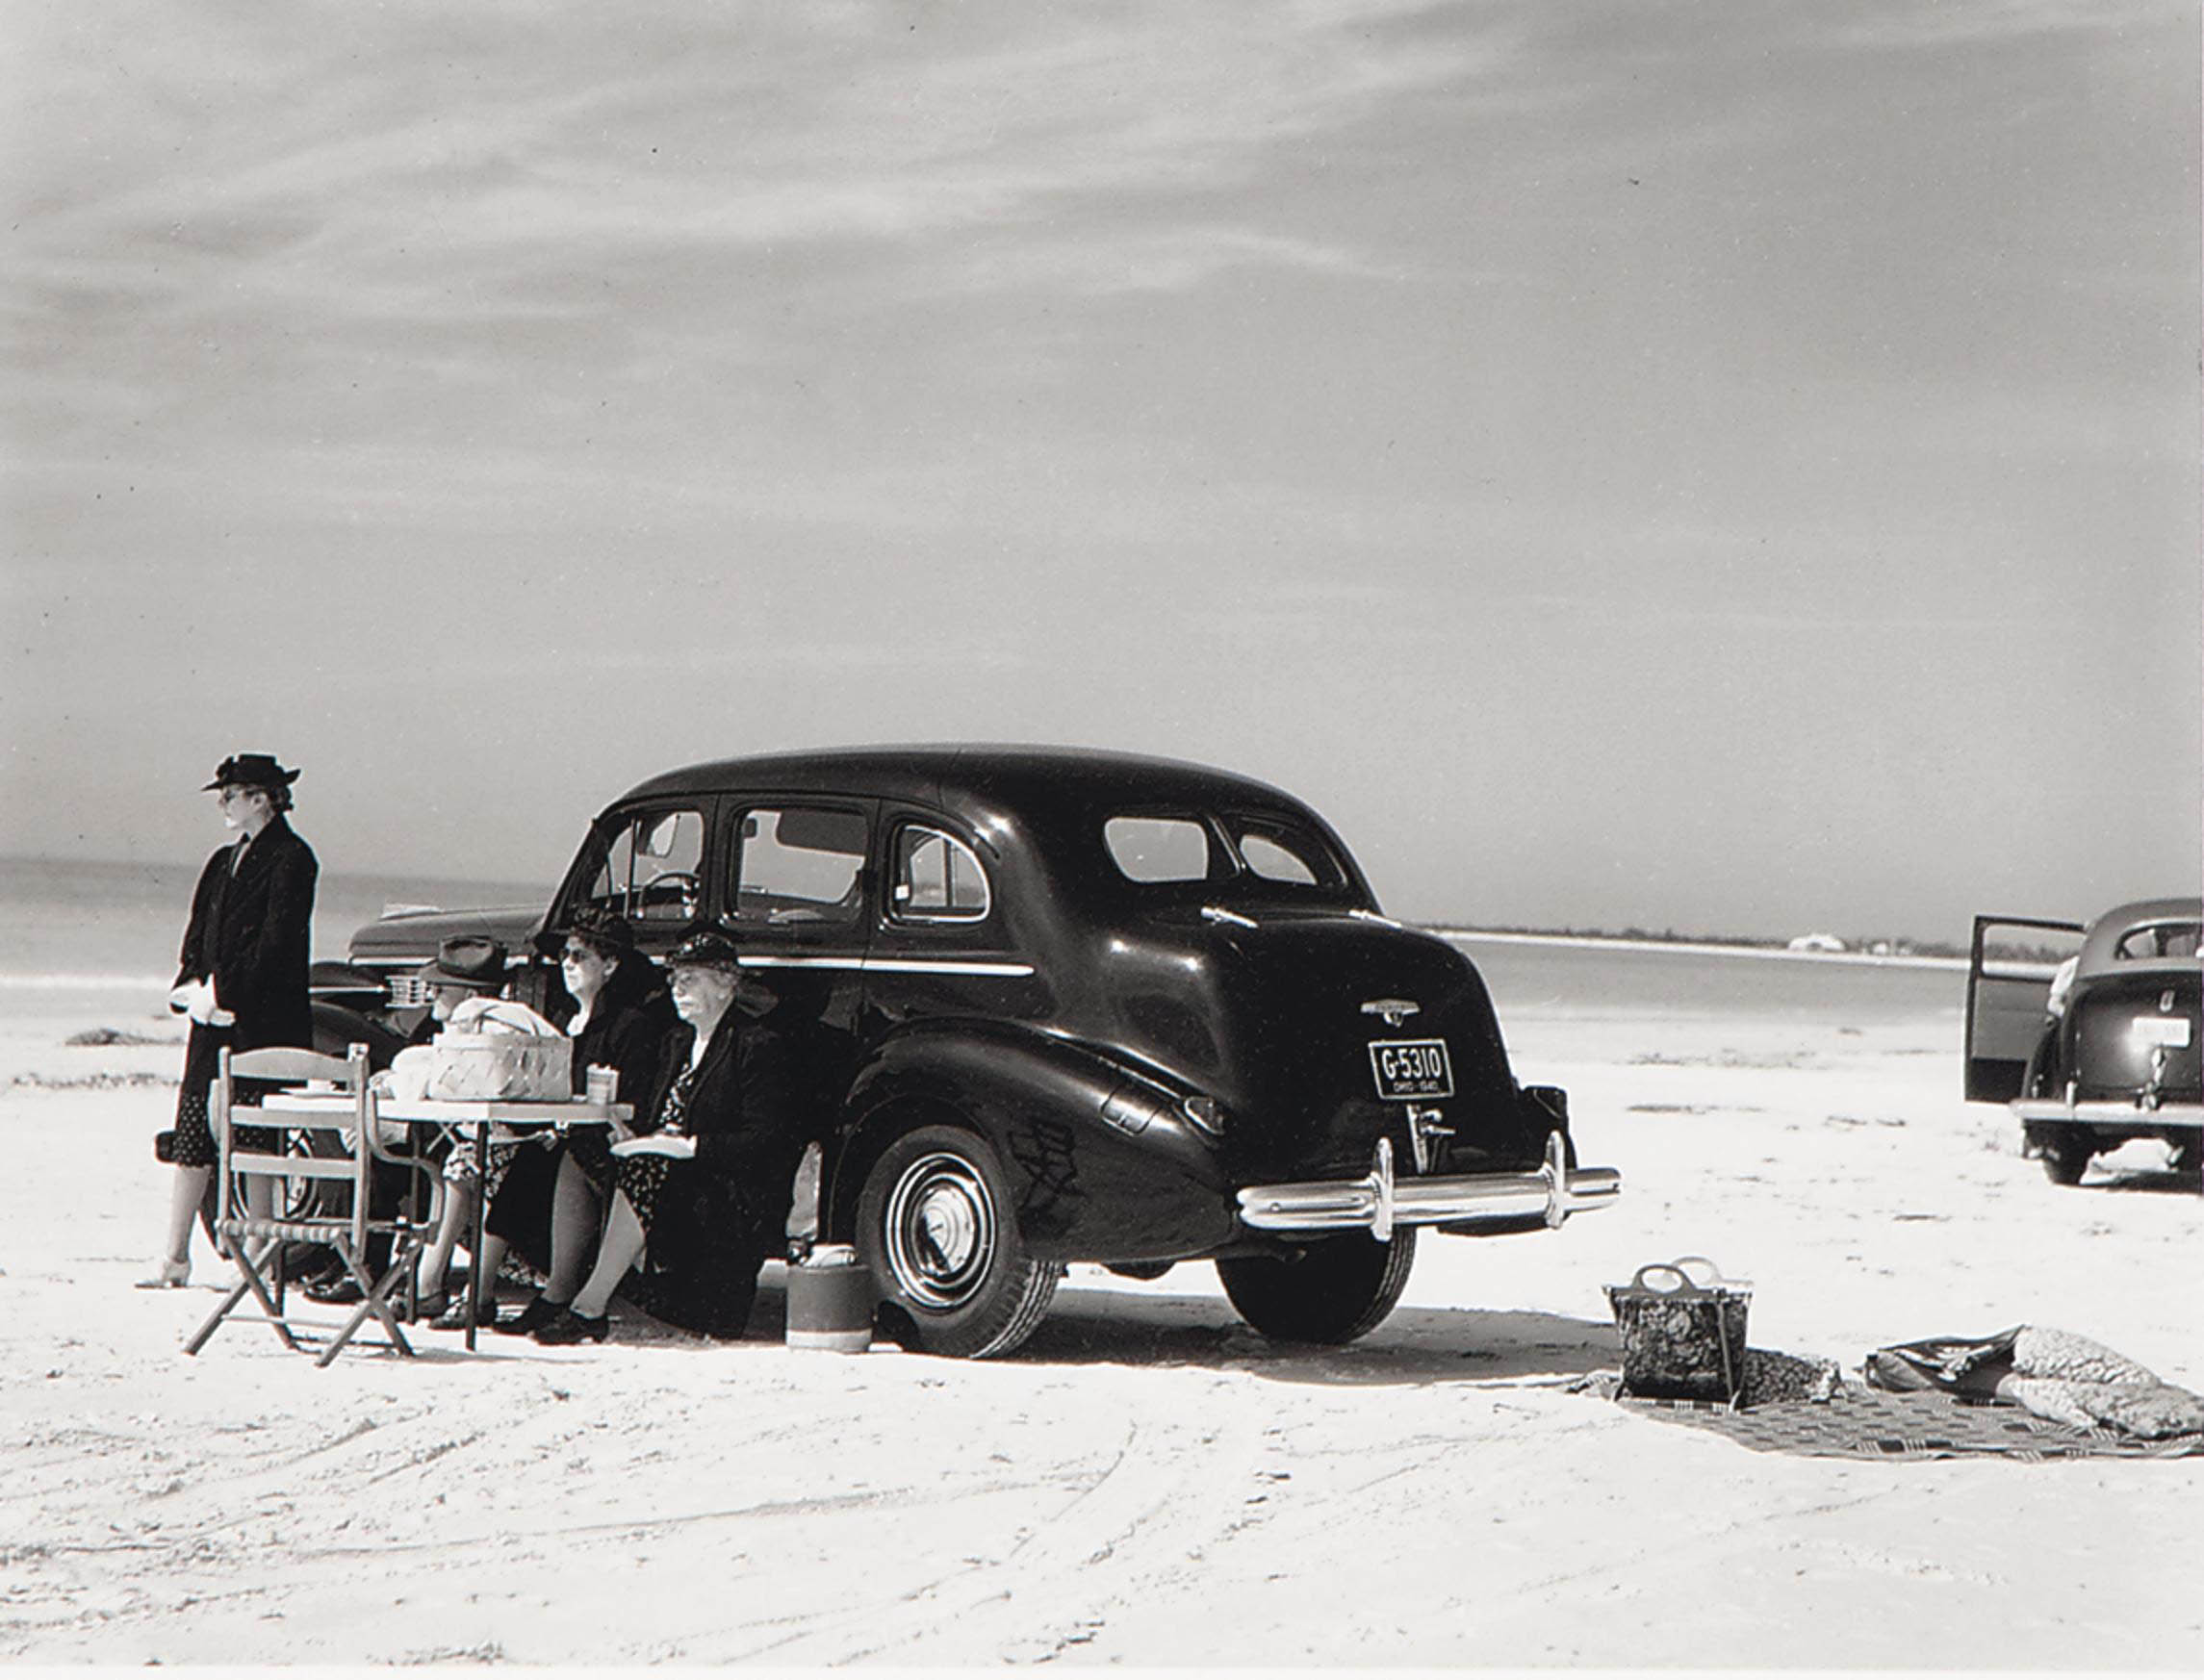 Winter tourists picnicking on running board of car, Sarasota, Florida, 1941